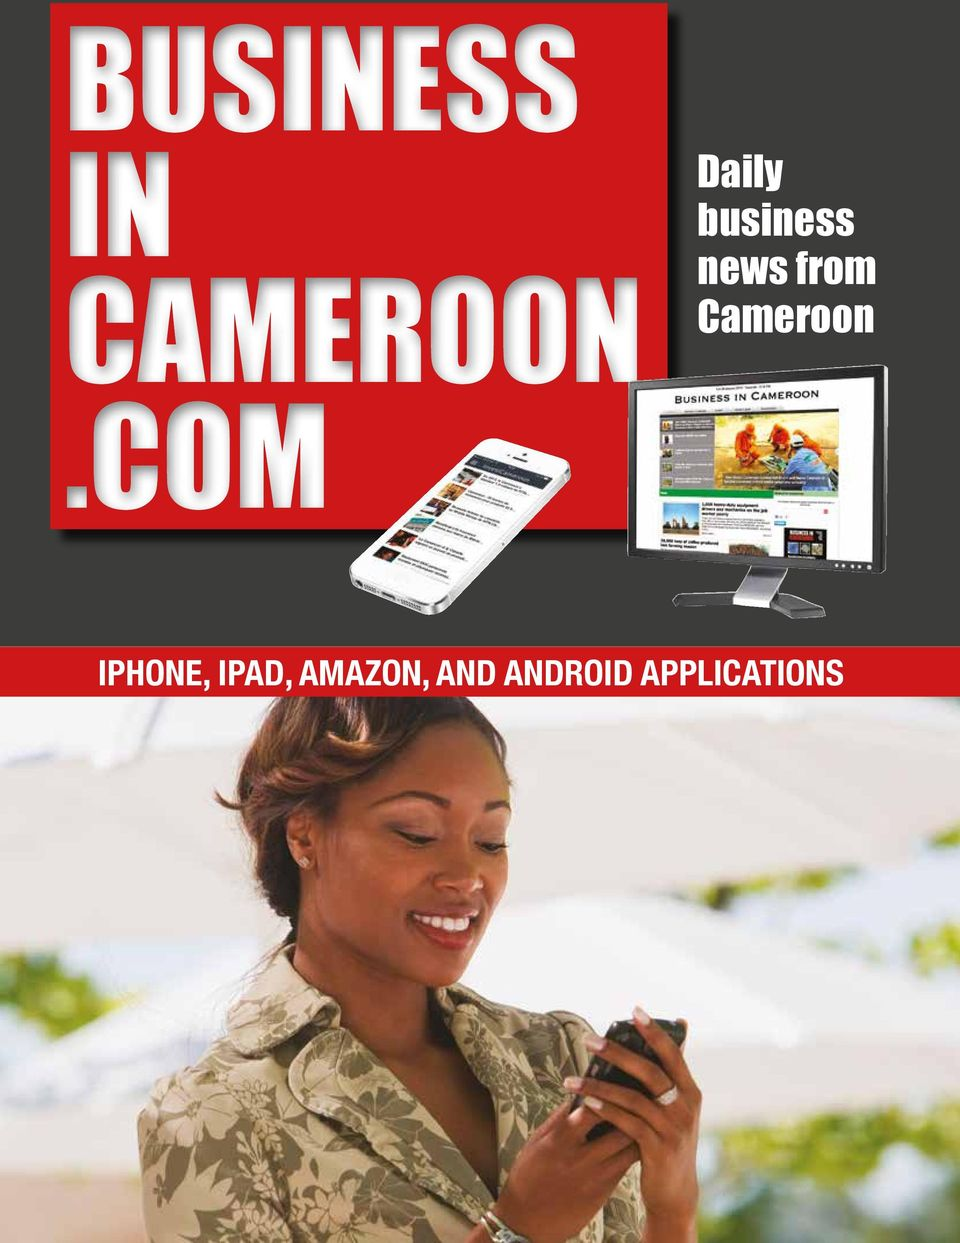 Cameroon.